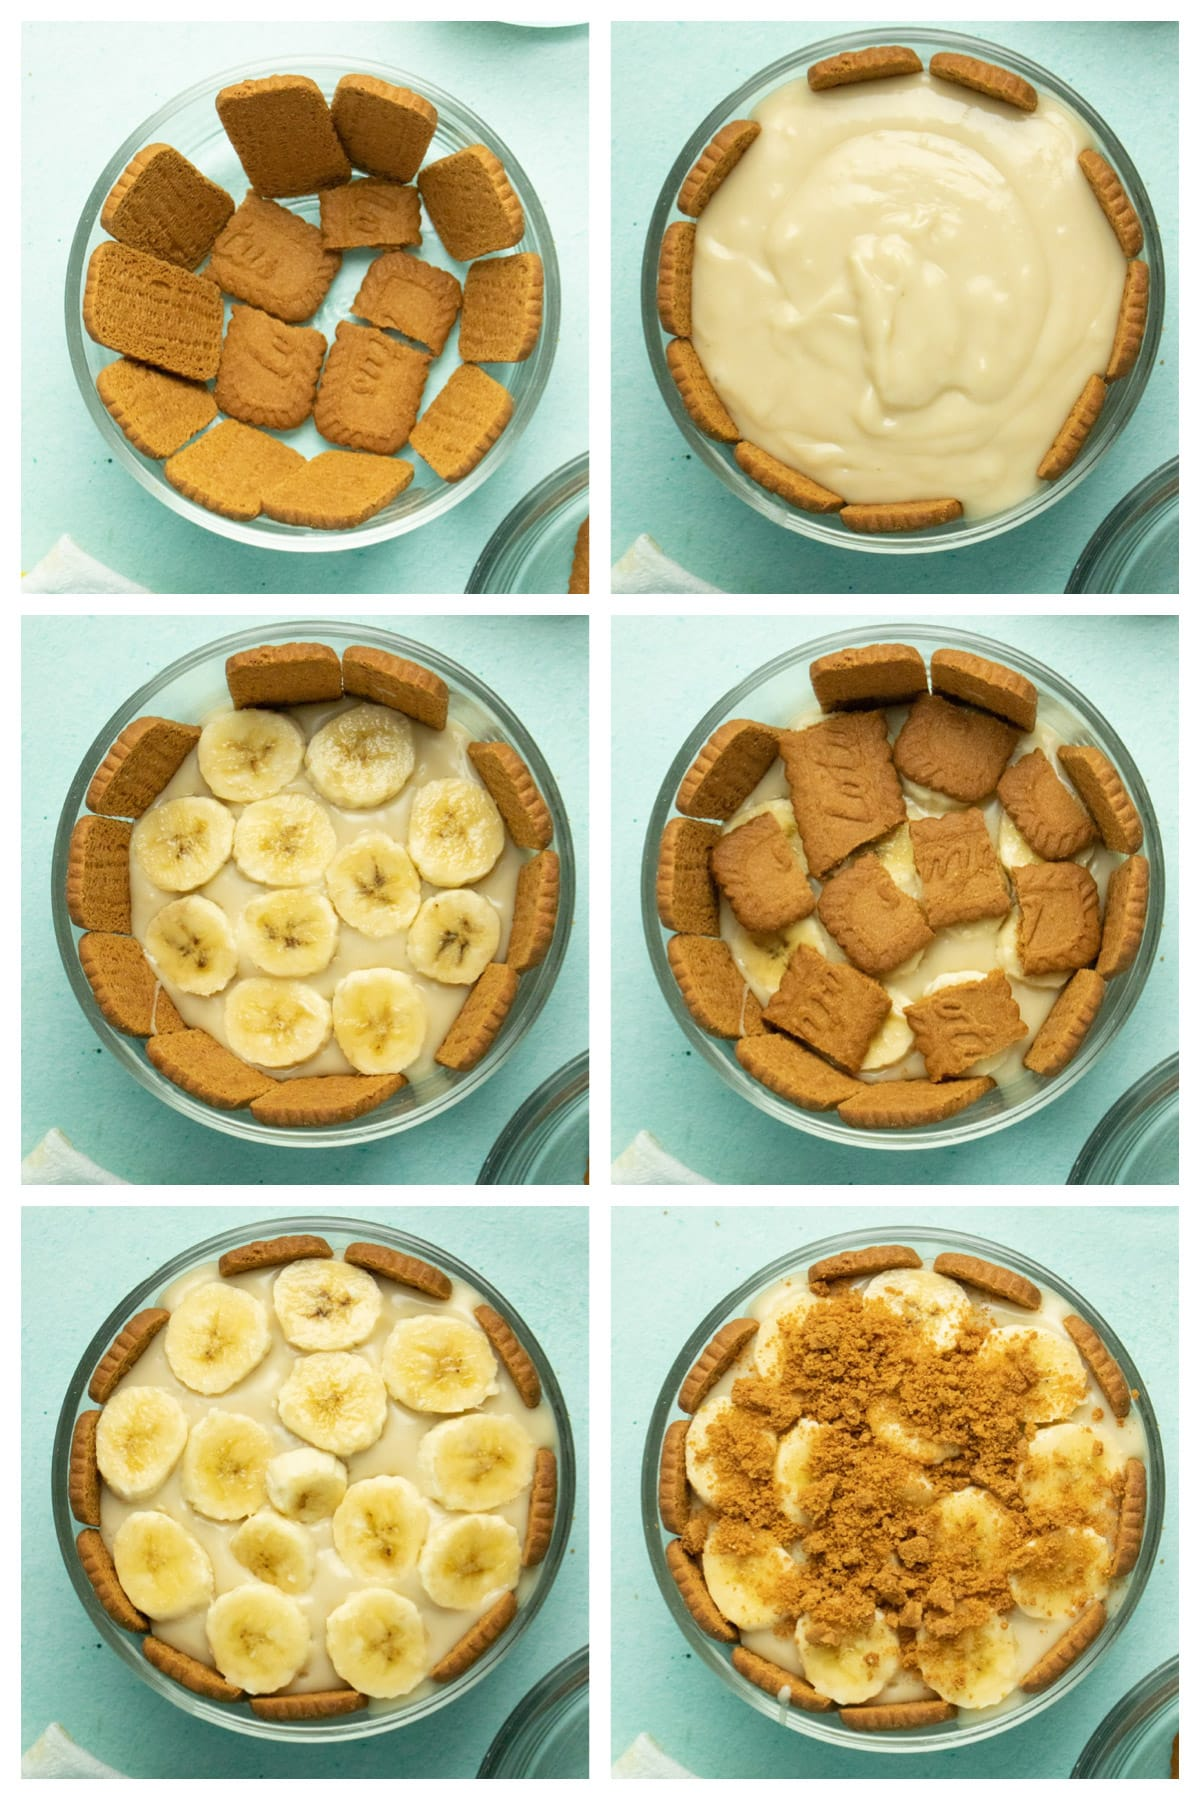 image collage showing: cookies lining the bowl, pudding layered on, banana slices layered on top, cookies layered on top, more bananas, and crumbled Biscoff cookies topping off the pudding